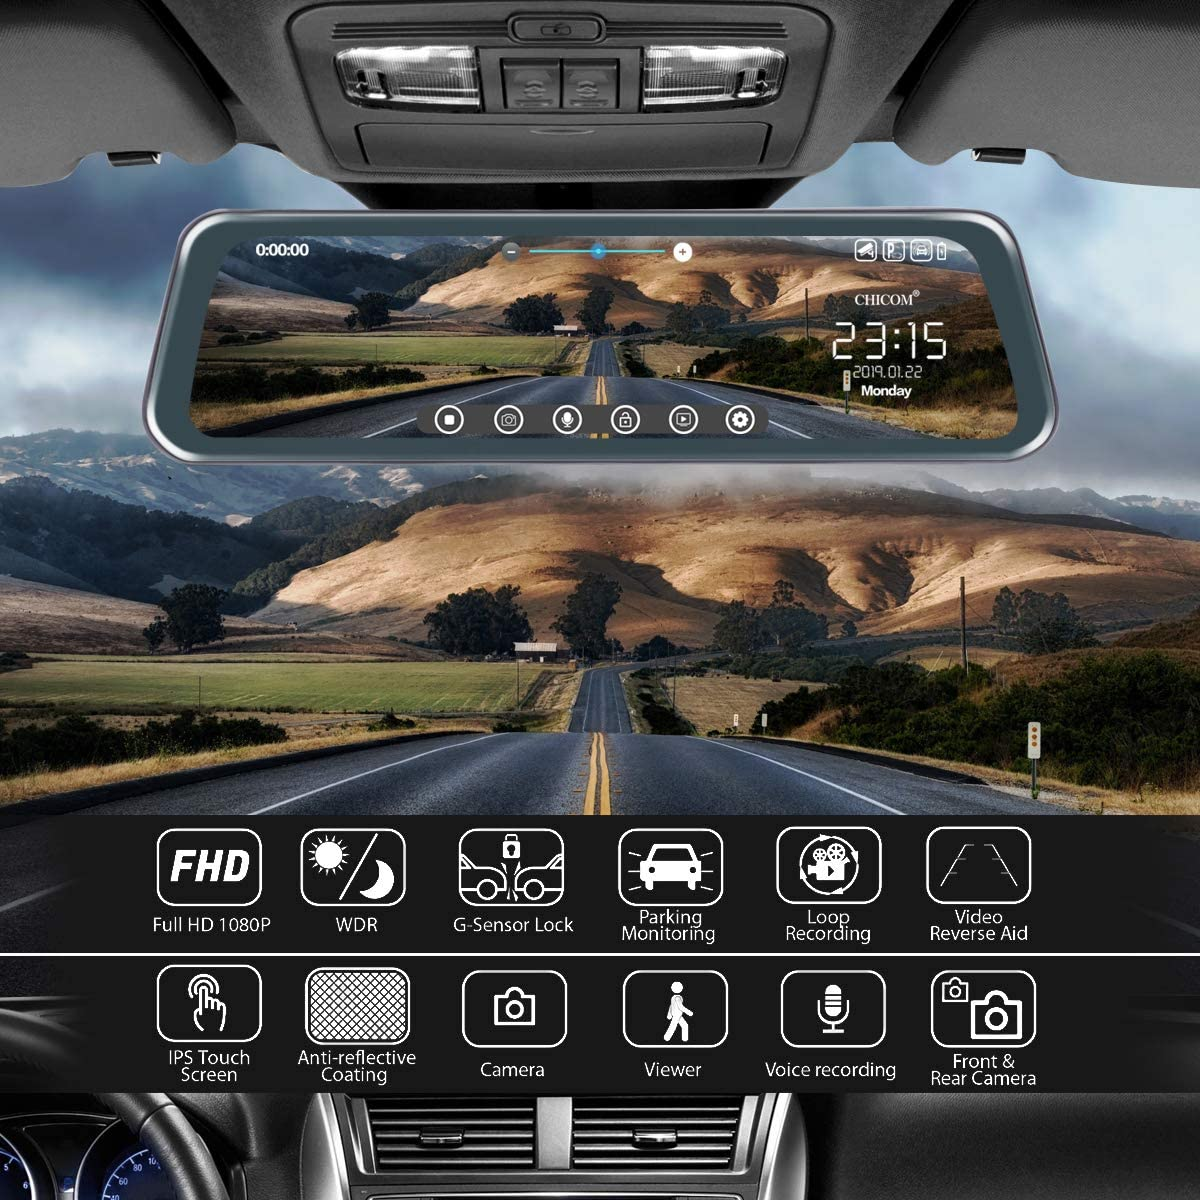 CHICOM Mirror Dash Cam,Backup Camera 10 Car Dash Camera Touch Screen 1080P Rearview Front and Rear Dual Lens with Waterproof Reversing Camera,Enhanced Night Vision,HDR